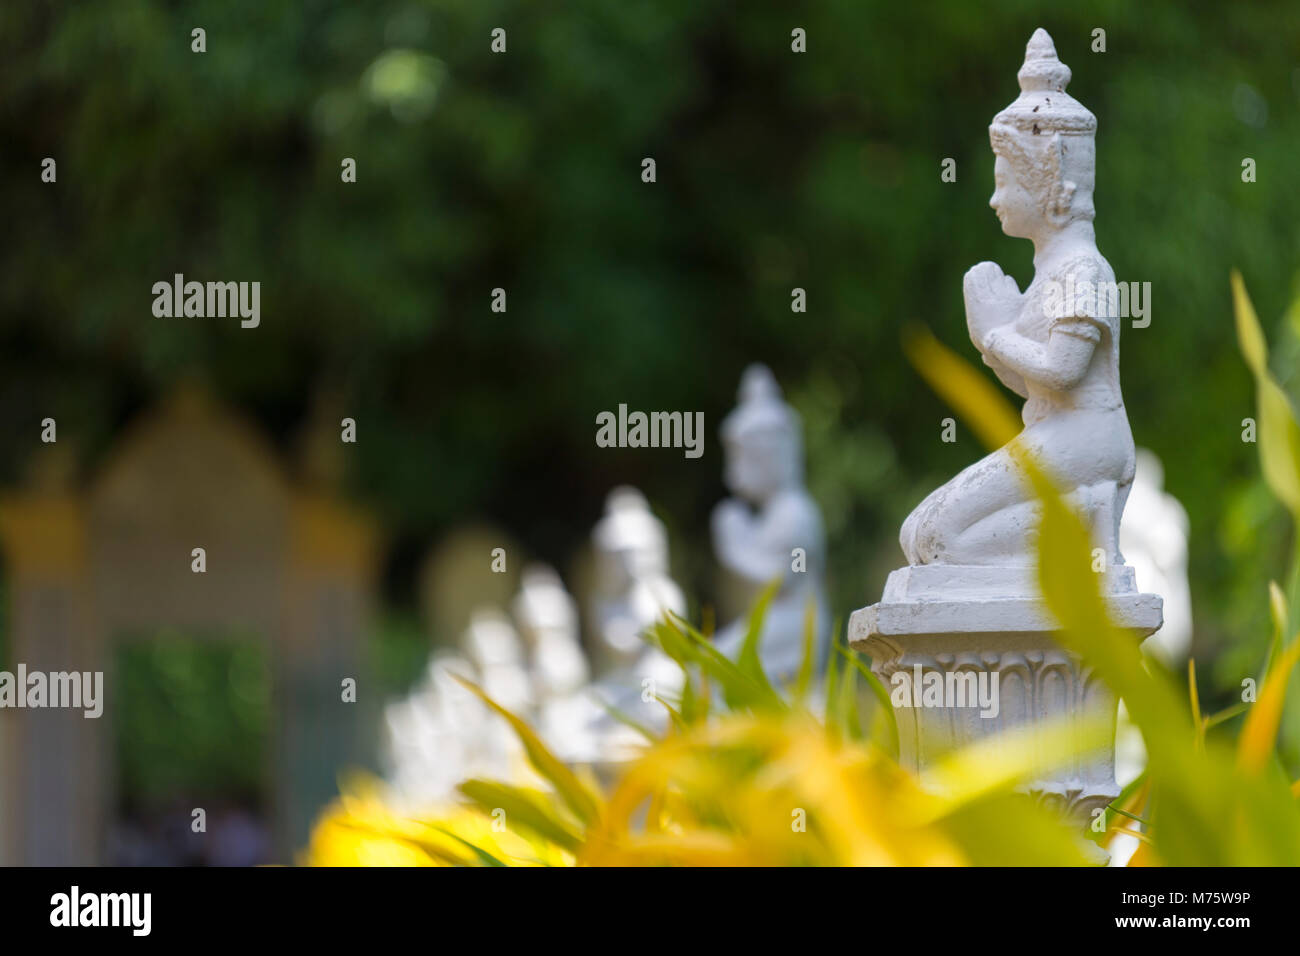 Multiple White Buddhist Statue With Clapsed Hand In Green Garden